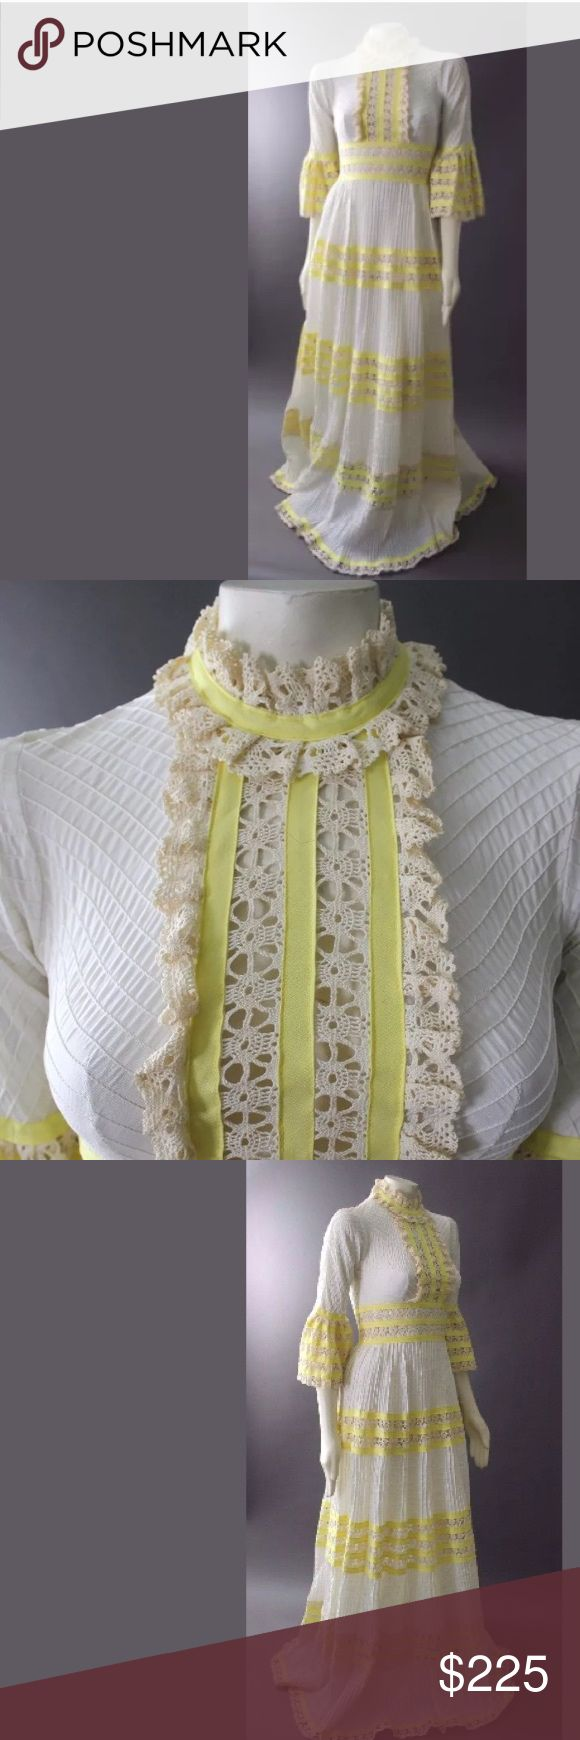 Vintage 70s Hippie Boho Wedding FESTIVAL DRESS XS From Rosa Mexicano. Absolutely stunning vintage dress. Ivory pin tucked cotton with hand crocheted lace and yellow ribbon trim. Angel sleeves. Back center zipper. Very good condition. 100% cotton. Measurements to come!❤️ Rosa Mexicano Dresses Maxi